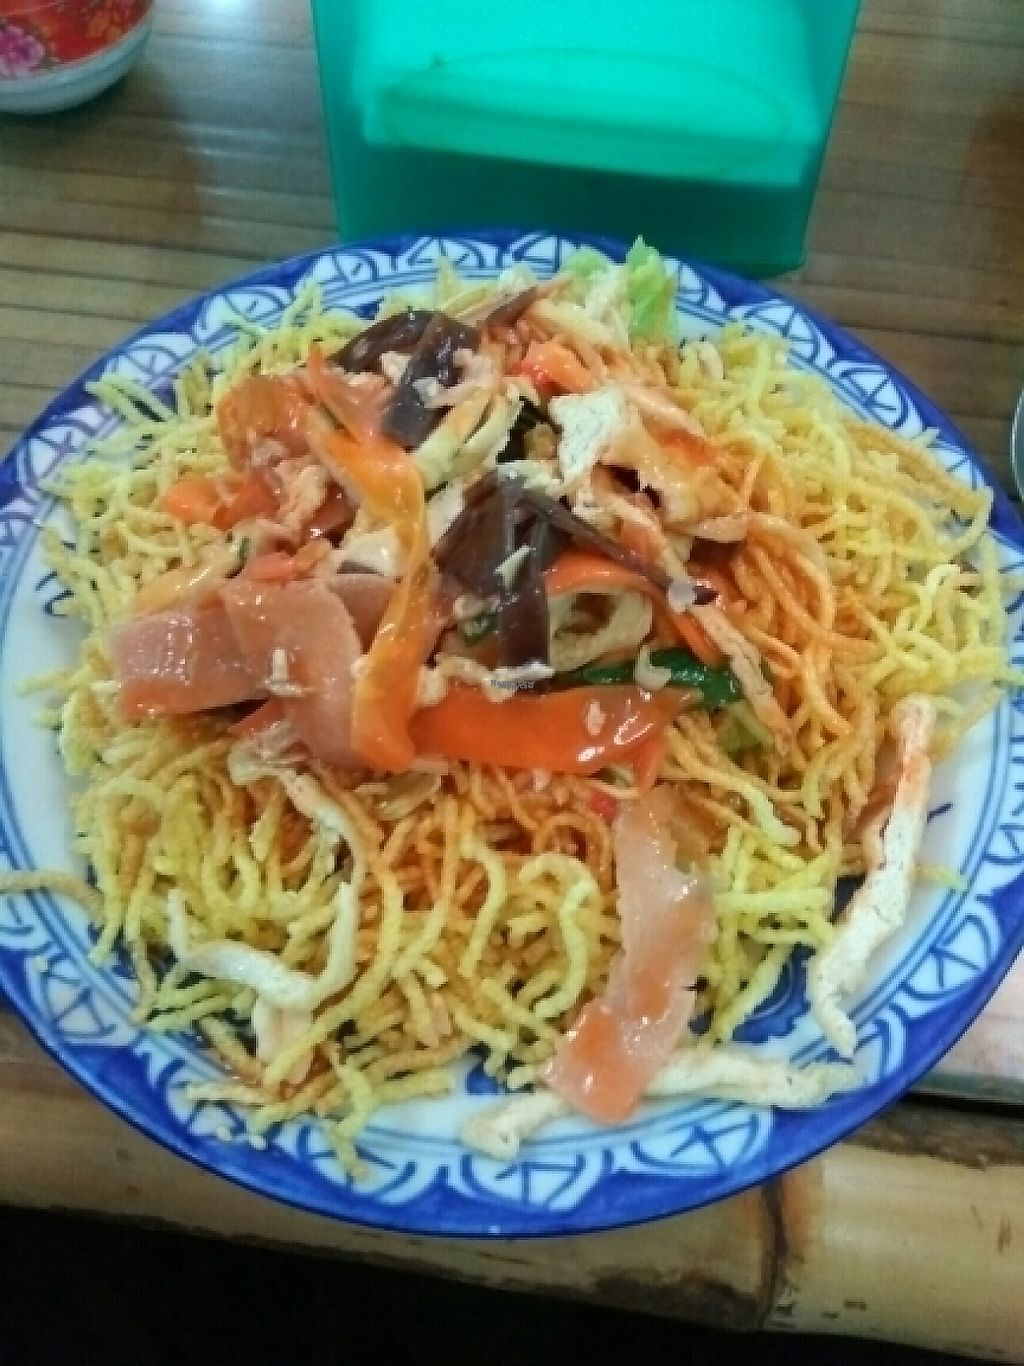 """Photo of Lien Hoa  by <a href=""""/members/profile/Miggi"""">Miggi</a> <br/>Dry Noodles Plate <br/> December 31, 2016  - <a href='/contact/abuse/image/54382/206466'>Report</a>"""